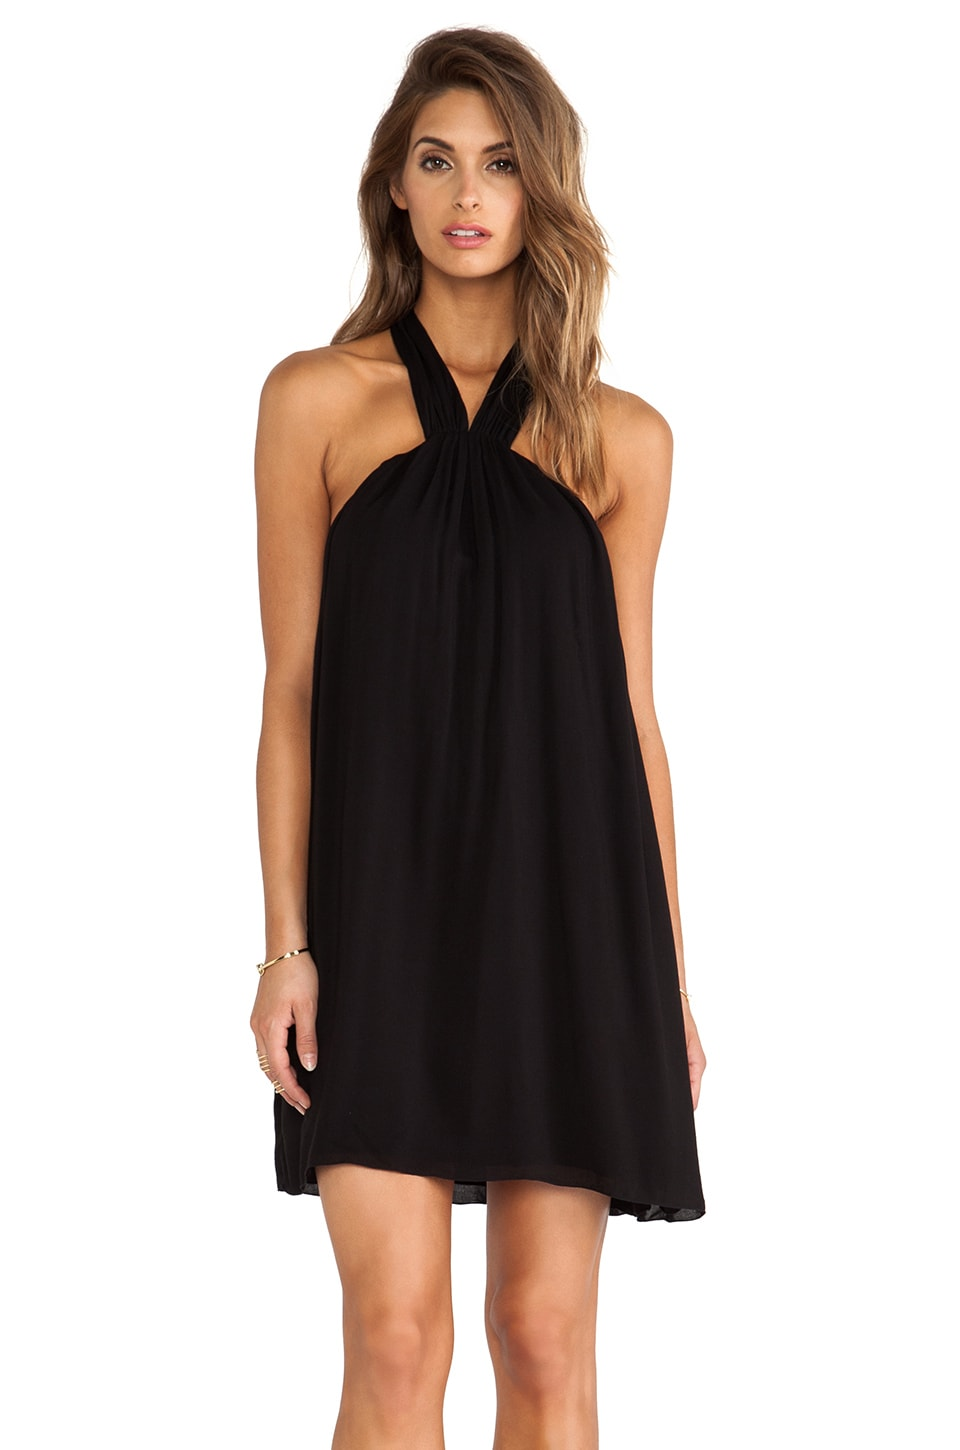 Indah Cosmo Mini Dress in Black